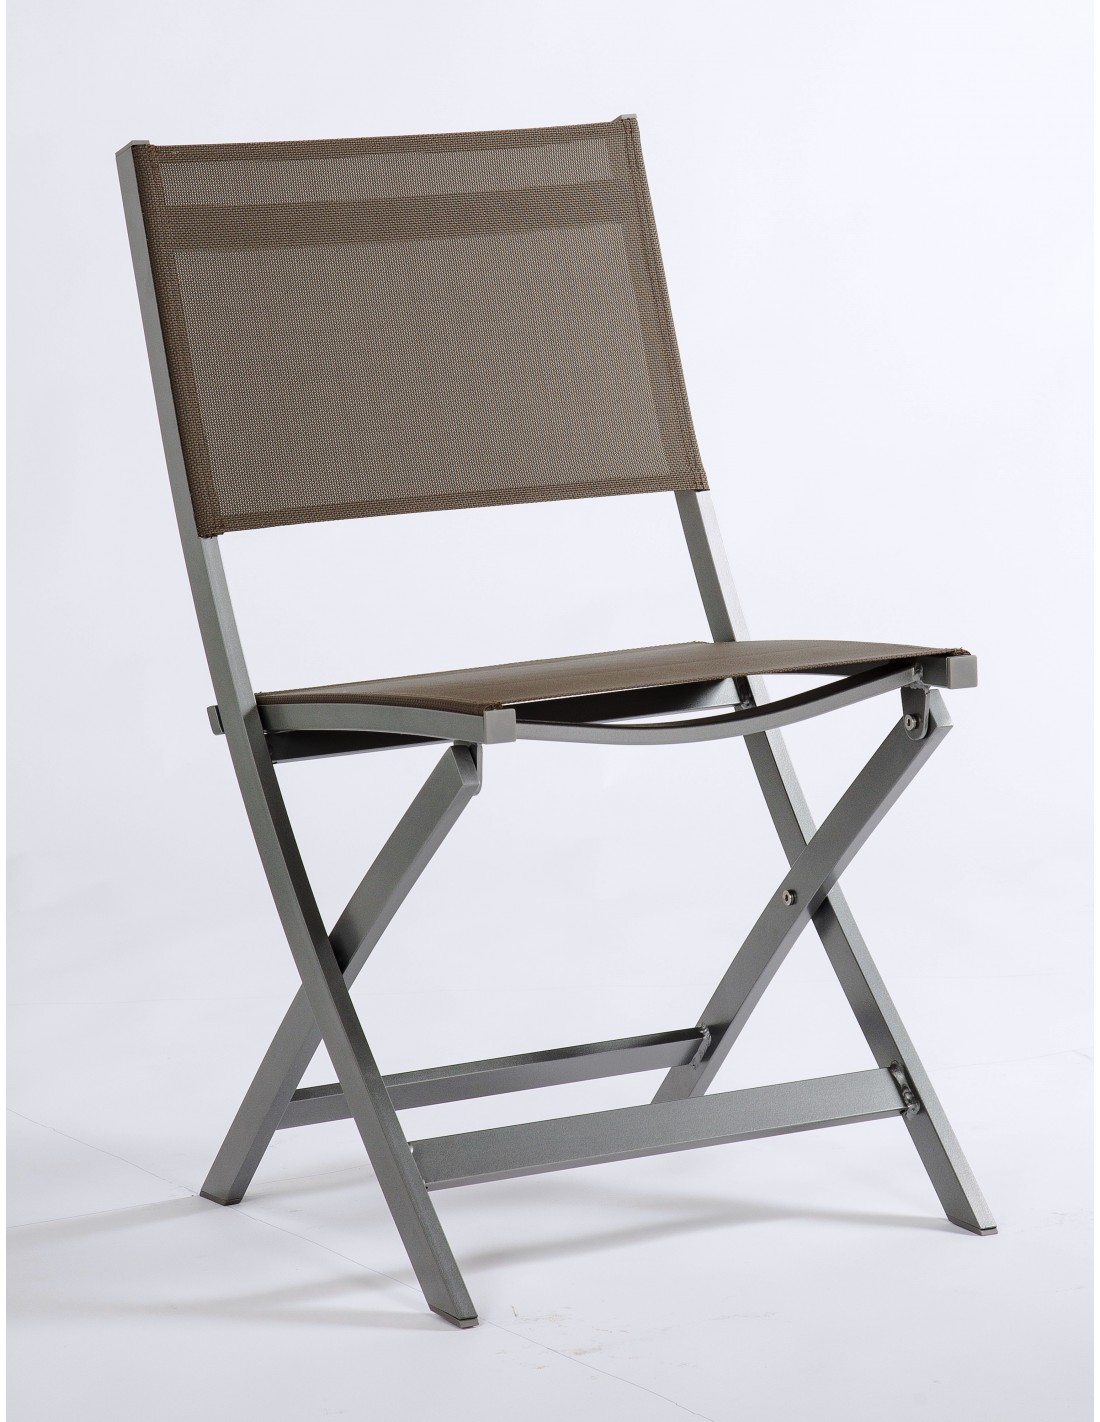 Chaise pliante stern joe structure aluminium graphite for Chaise aluminium textilene